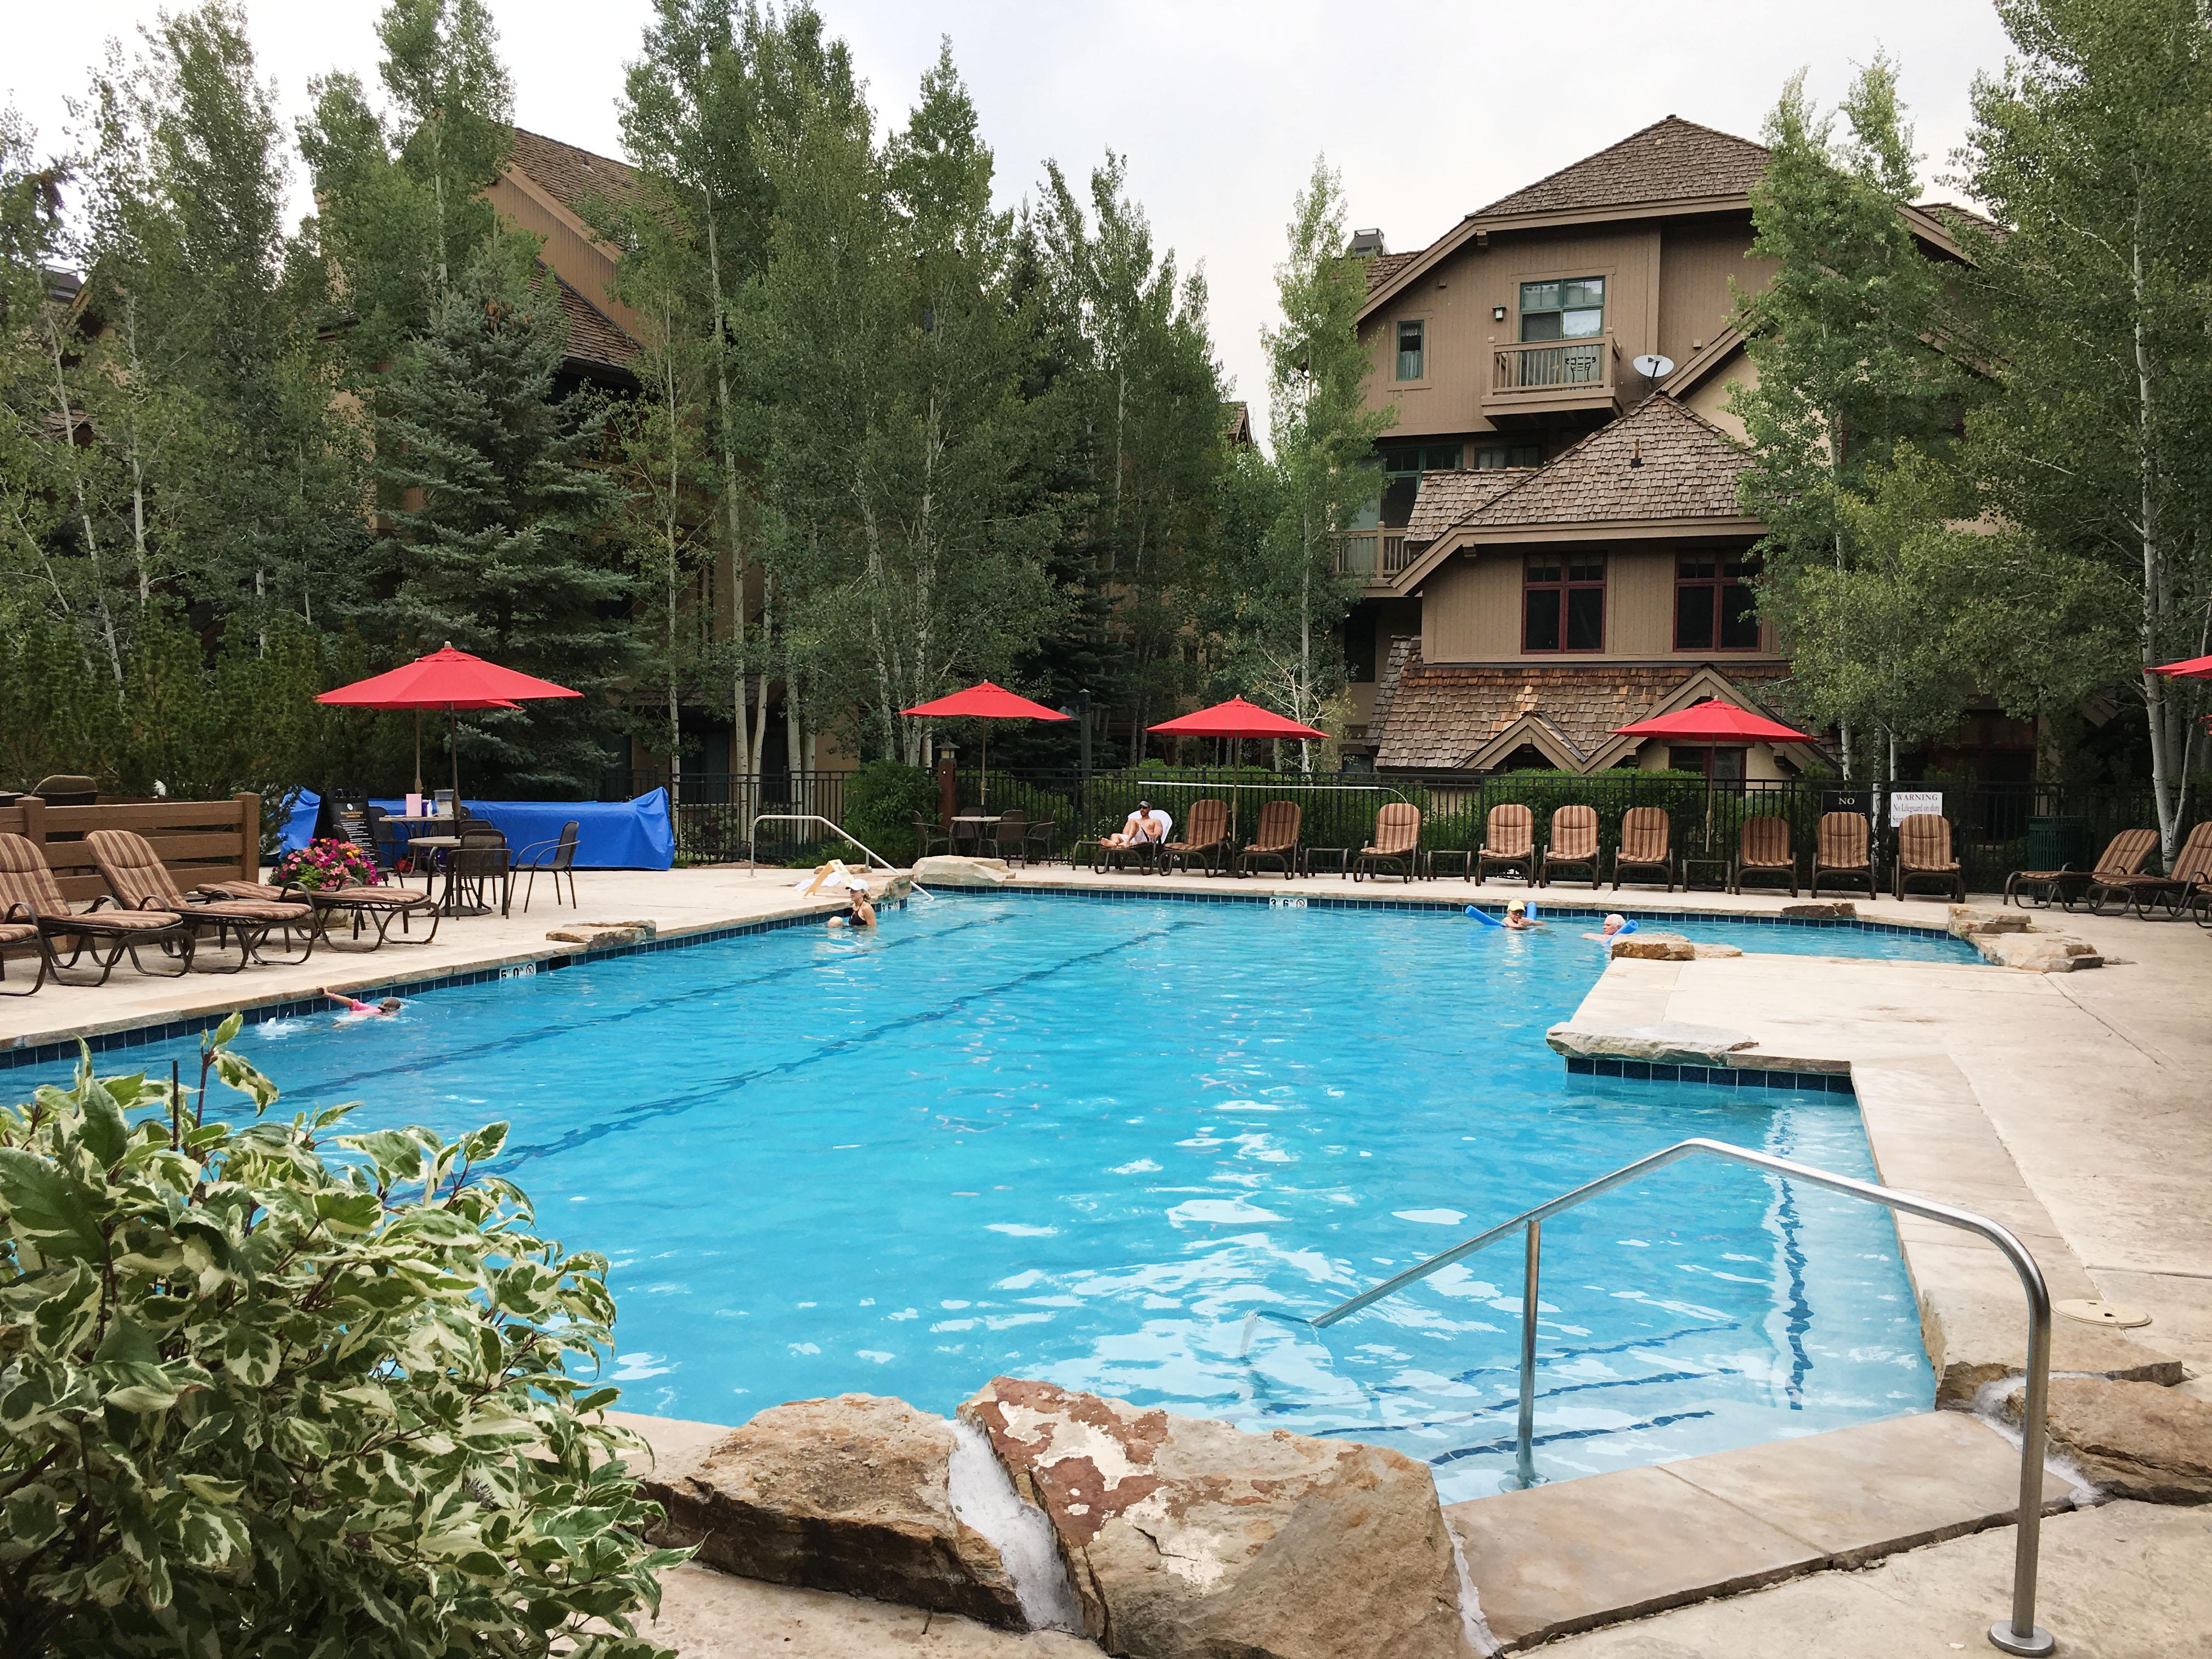 Enjoy access to Arrowhead Village amenities including a heated pool and hot tubs, as well as a fire pit in the winter.